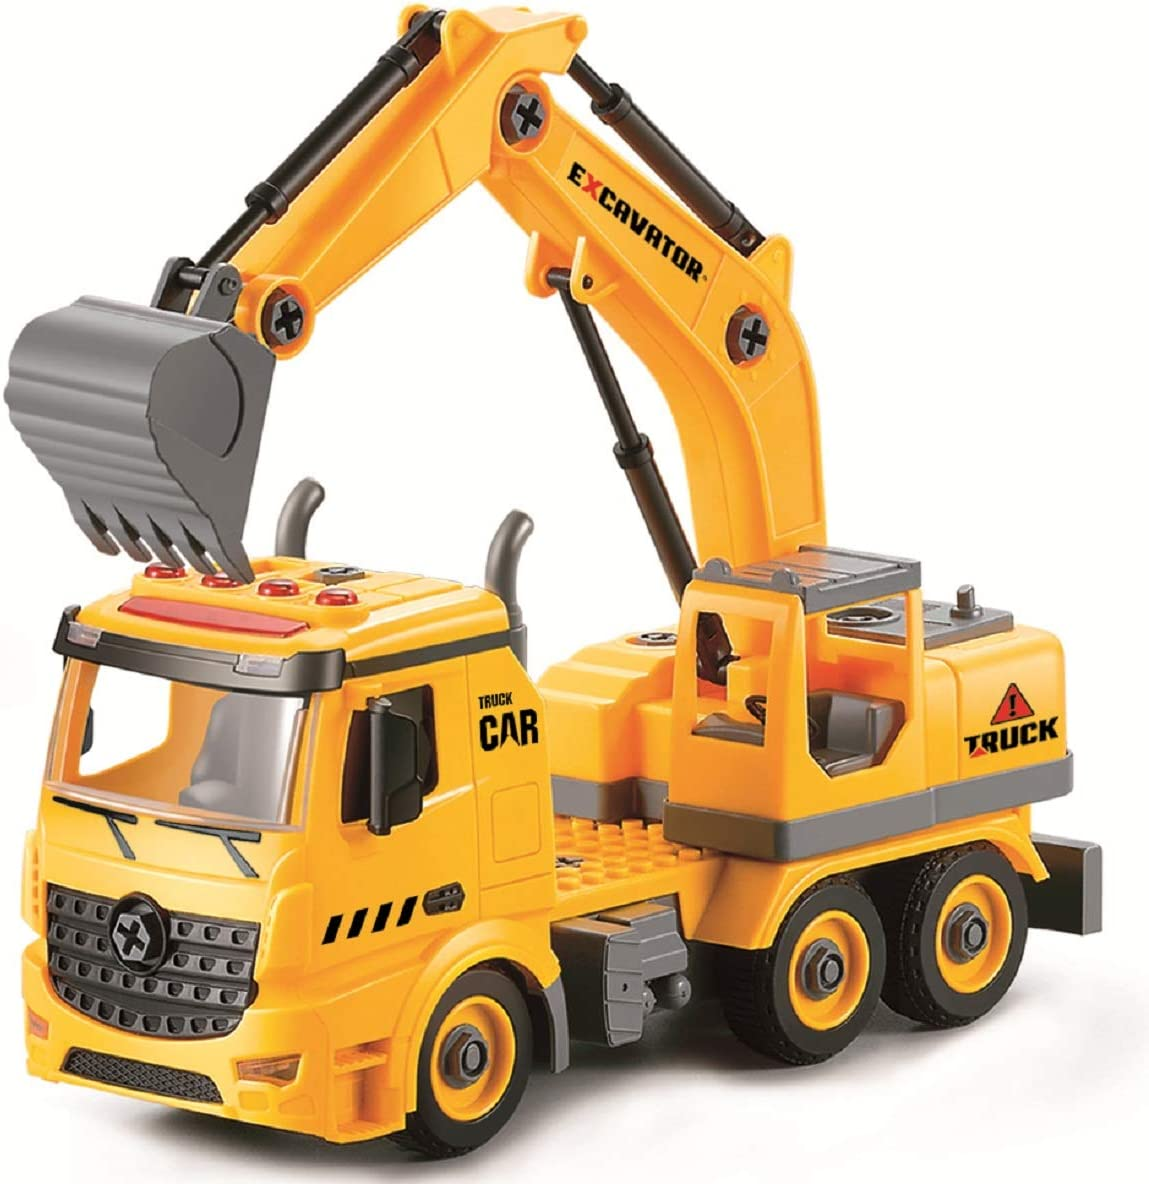 Acksonse Excavator Toys for Boys Kids SALENEW very popular! Powered DIY Cons Cheap mail order specialty store Friction